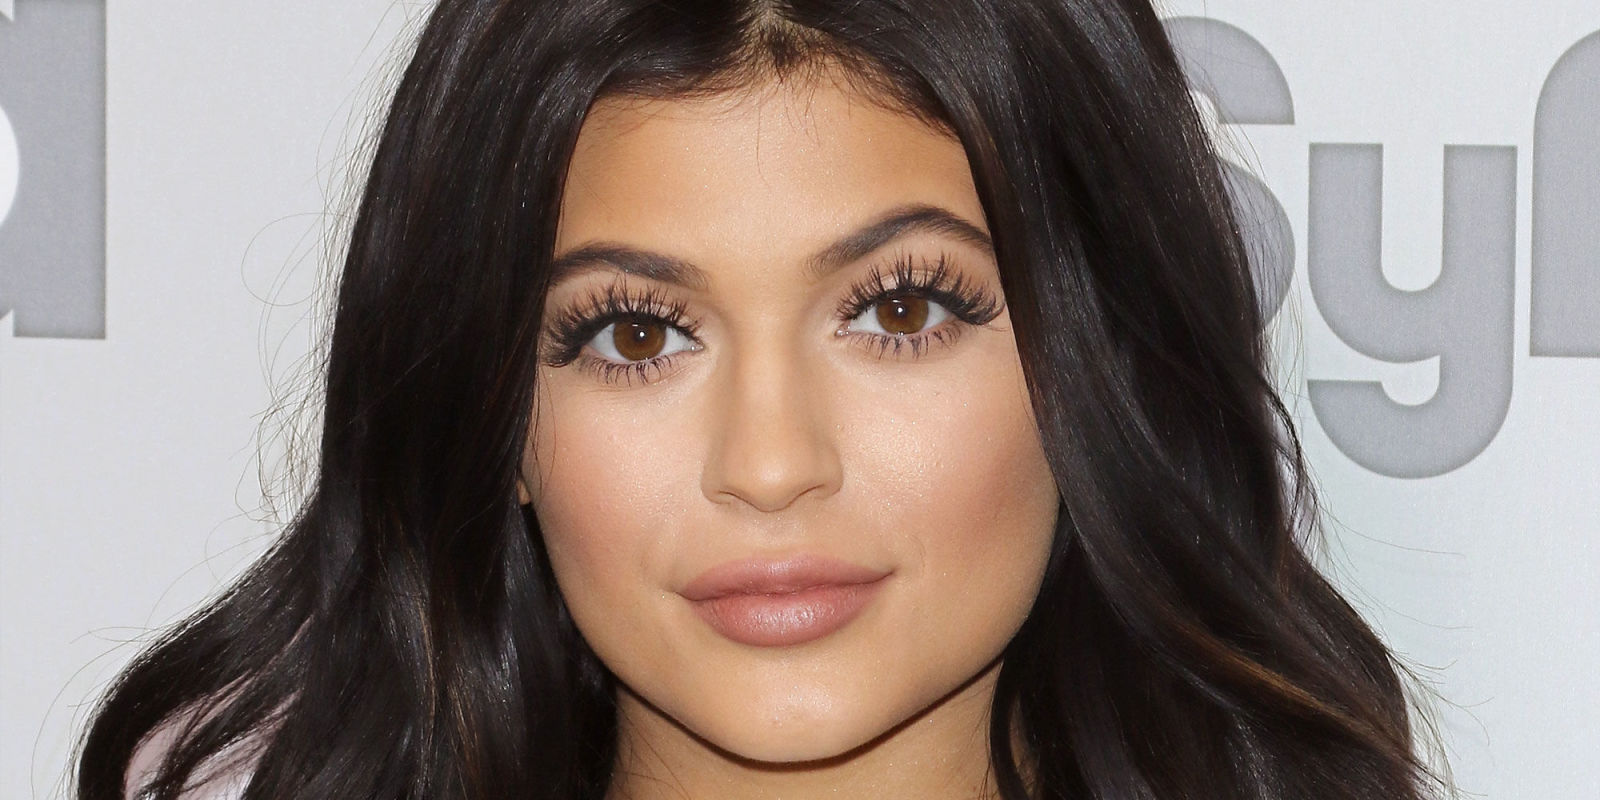 Kylie Jenner Long Eyelashes